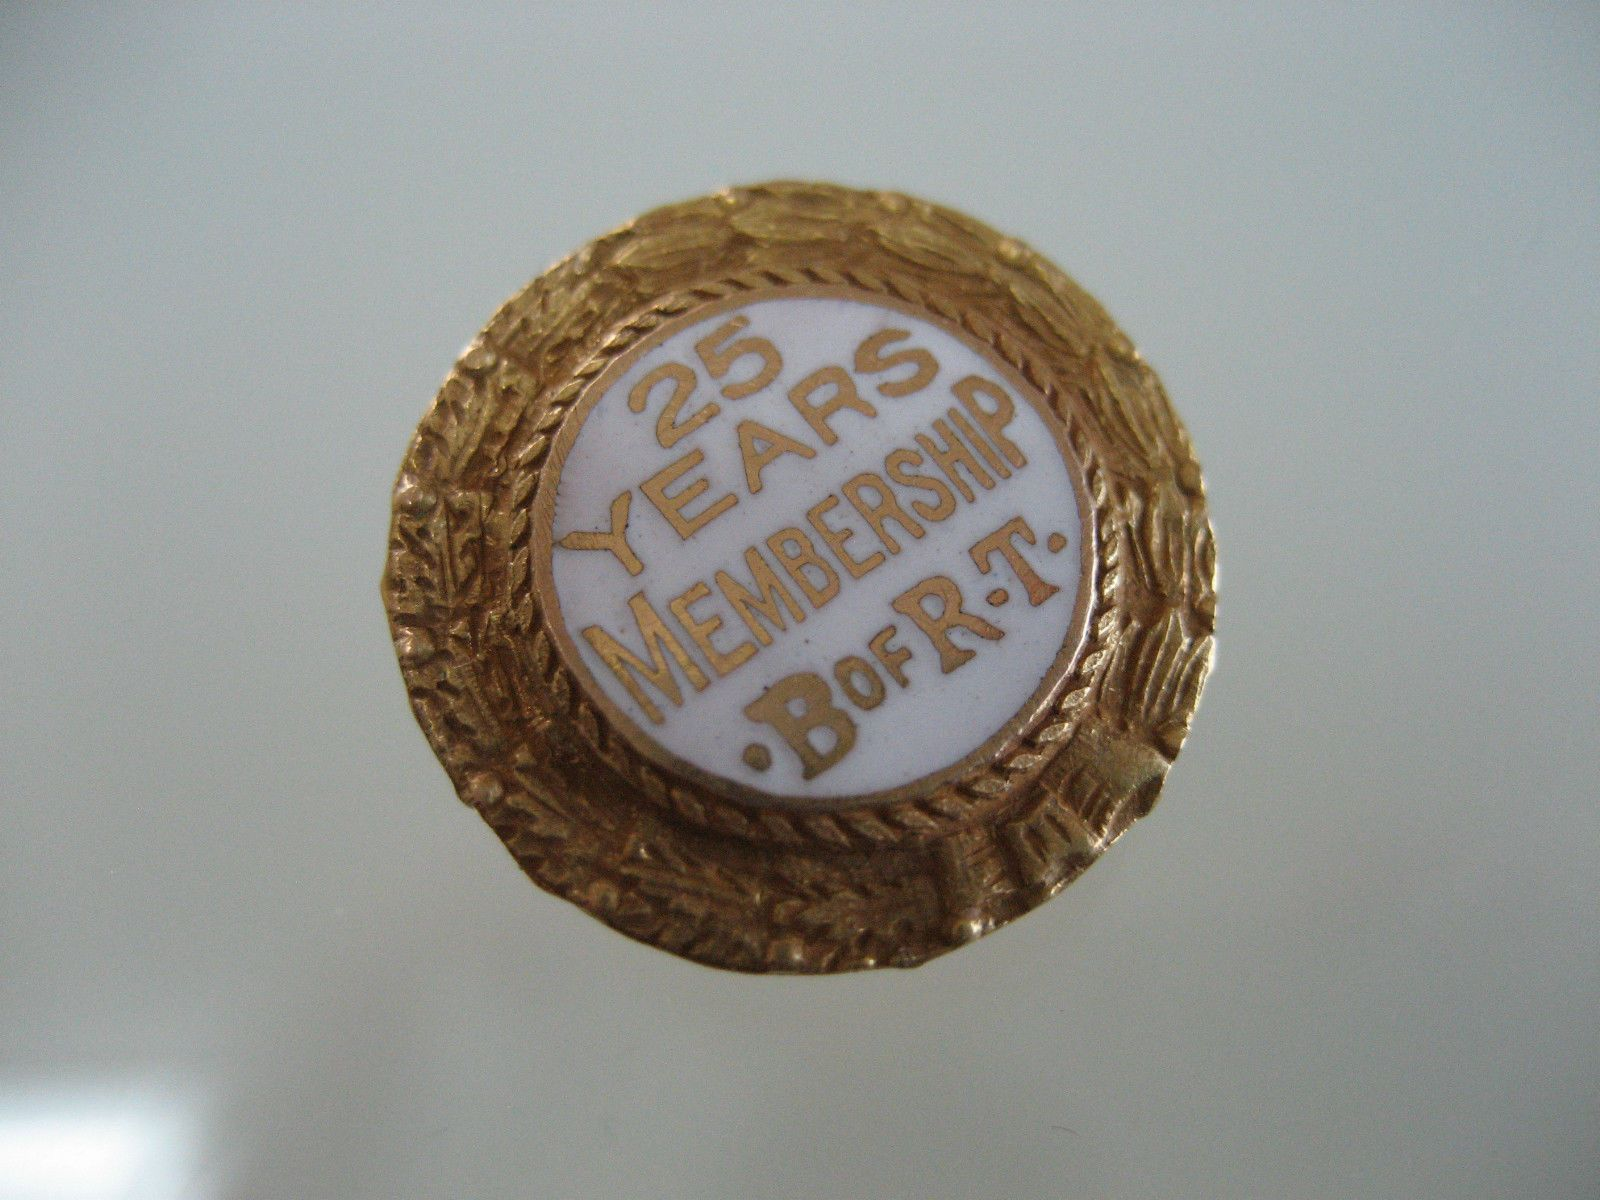 VINTAGE WHITE ENAMEL & 14K  GOLD 25 YEARS  B. OF RT. BROTHERHOOD OF RAILROAD PIN picclick.com